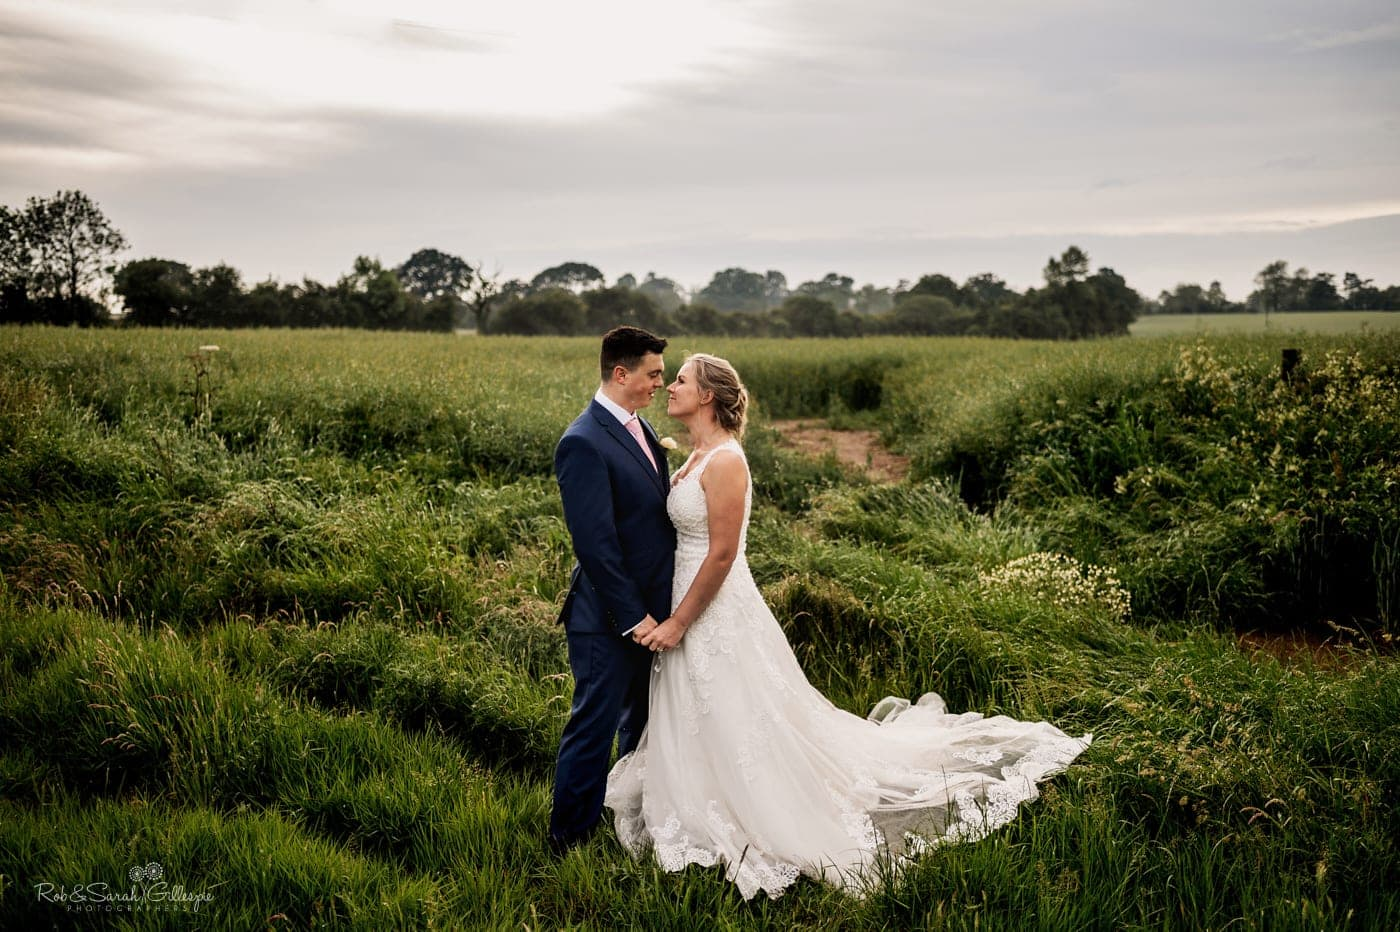 Bride and groom in lush green field